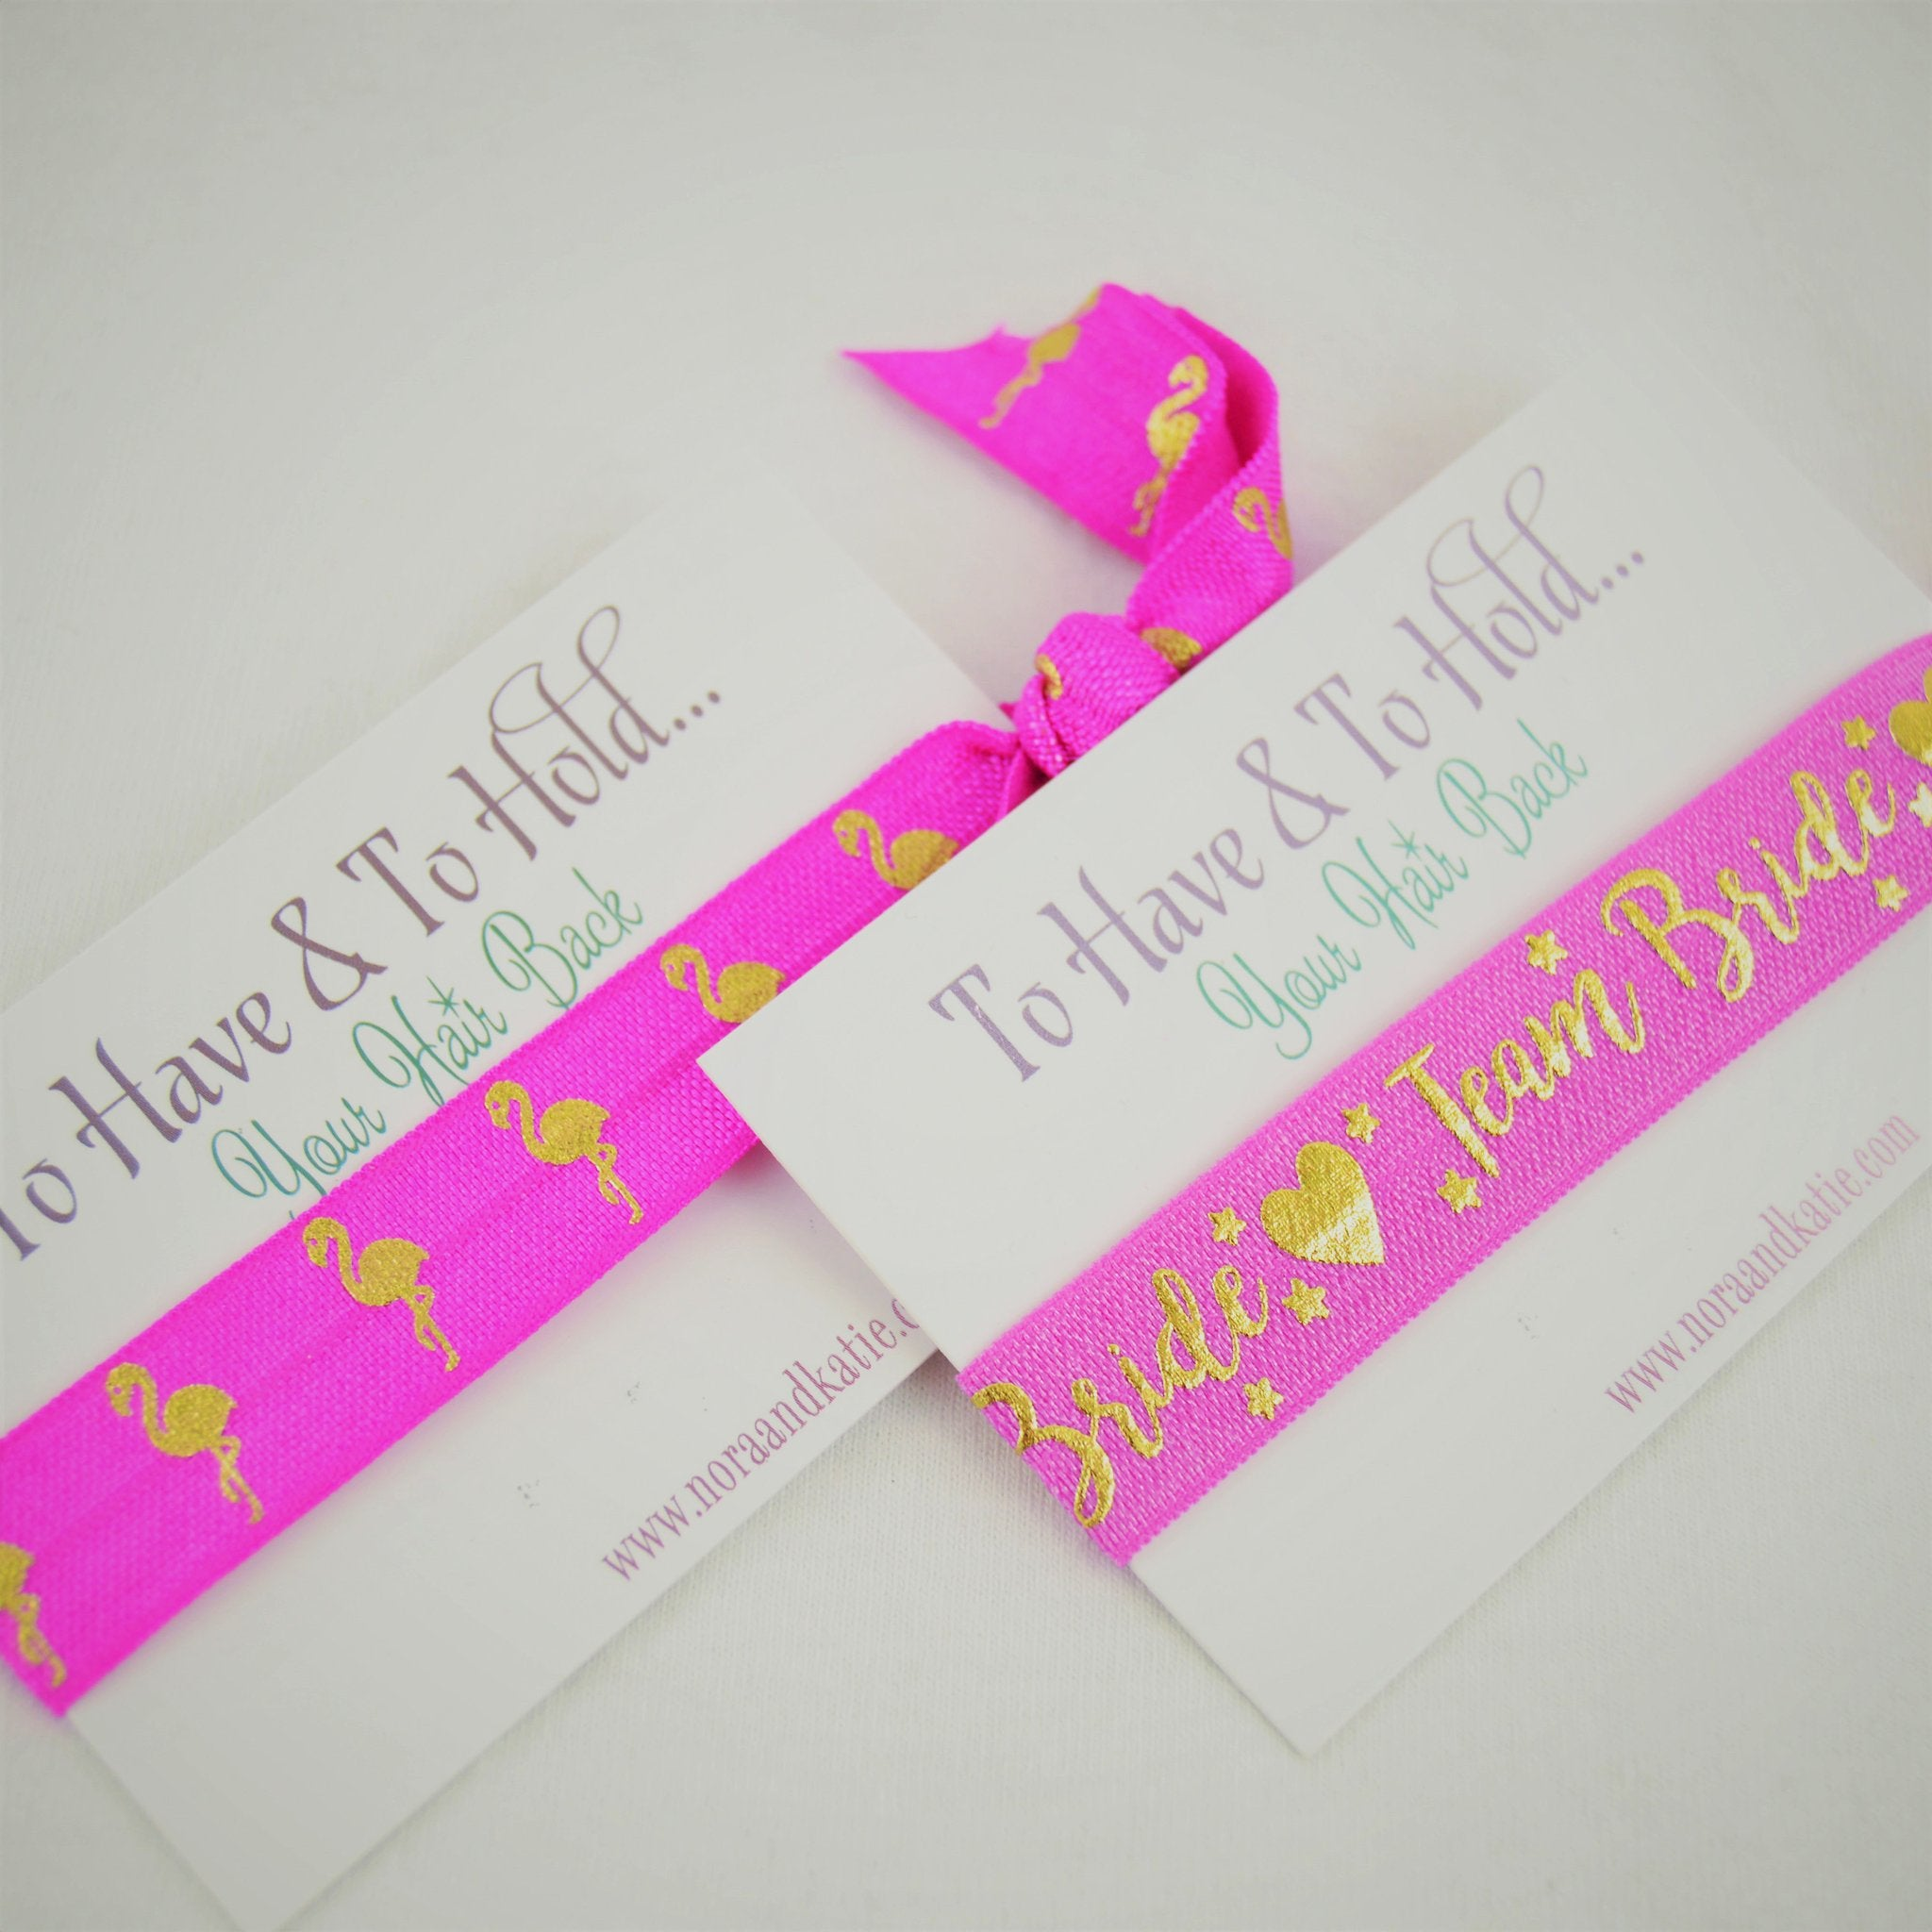 Pink To have and to hold your hair back hen party bag fillers